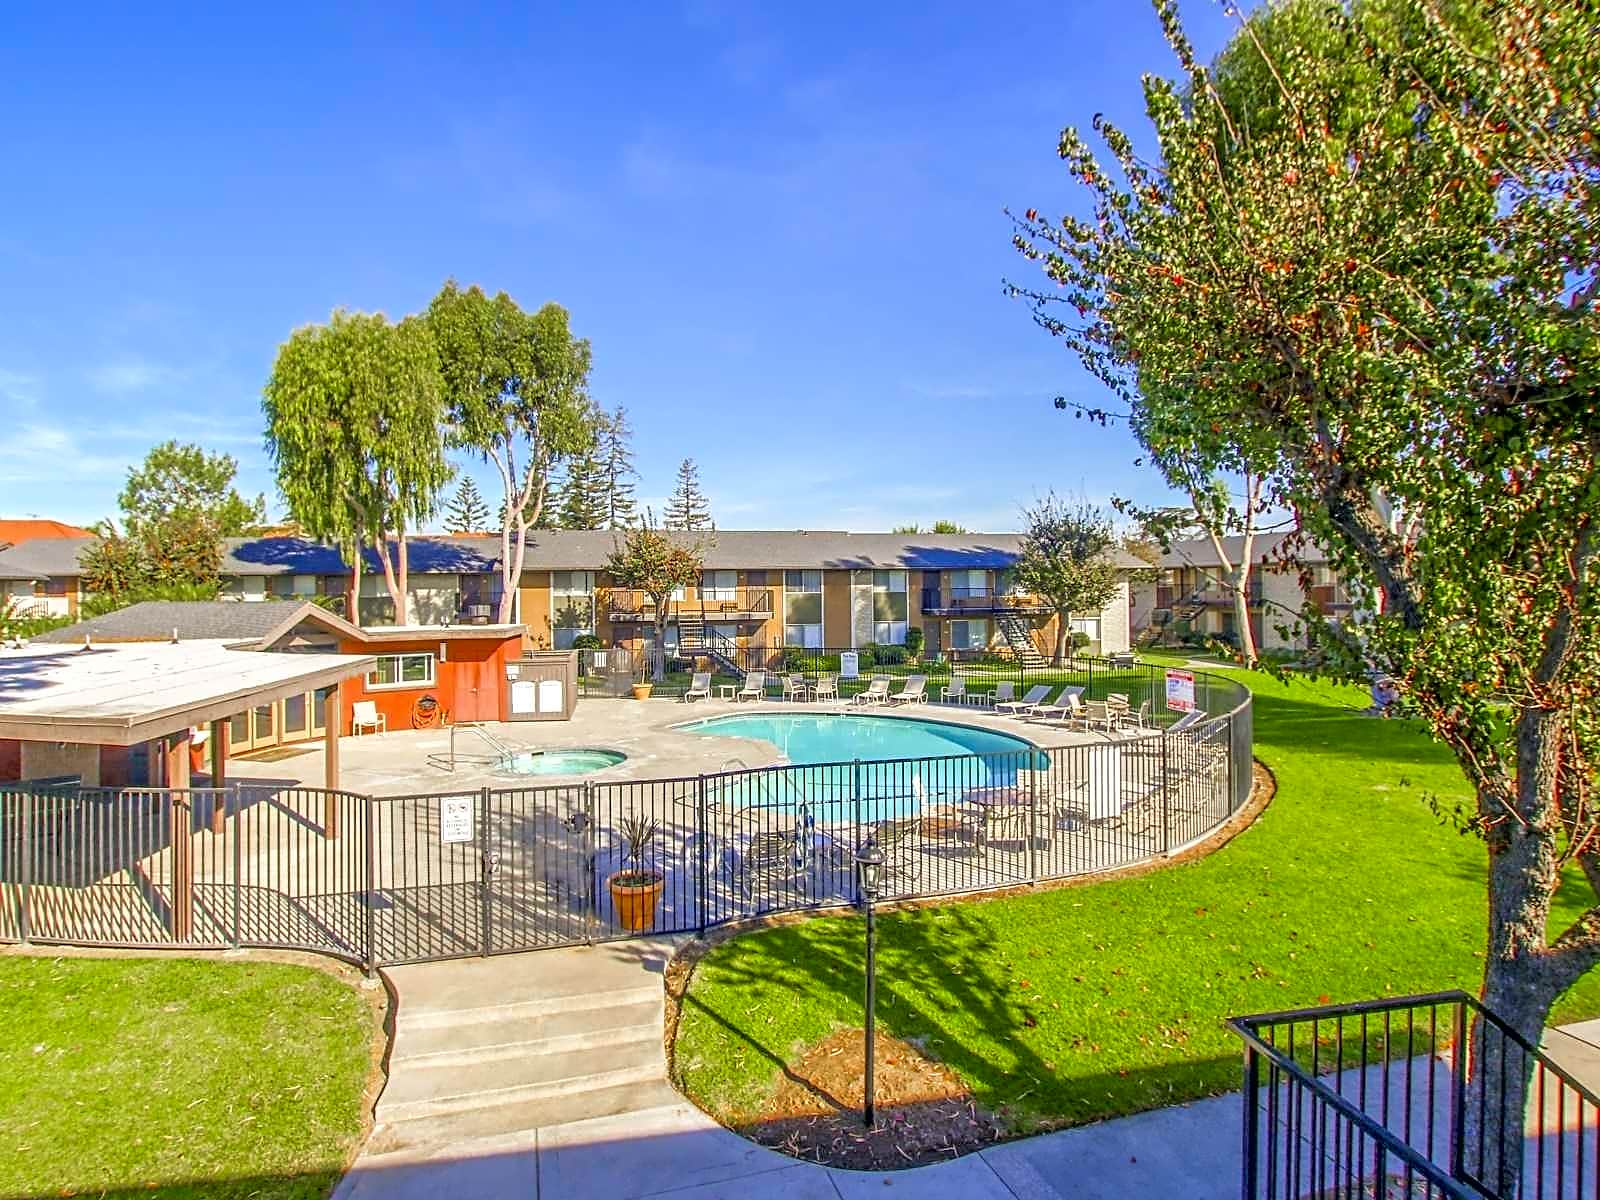 b for p in trulia st ca lincoln uh rent picture ps apartments